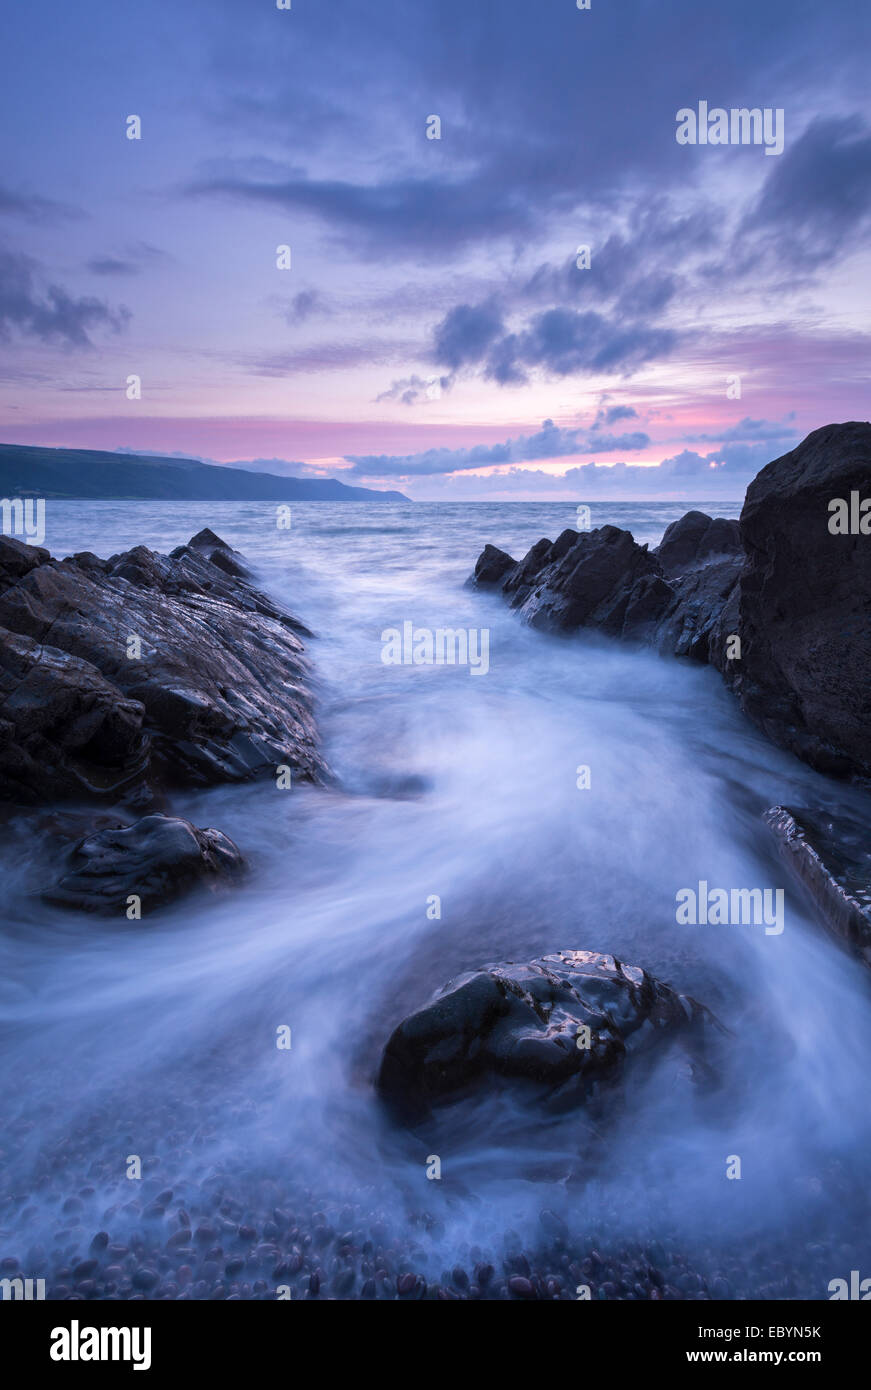 Twilight over Porlock Bay, Exmoor National Park, Somerset, England. Summer (August) 2014. - Stock Image